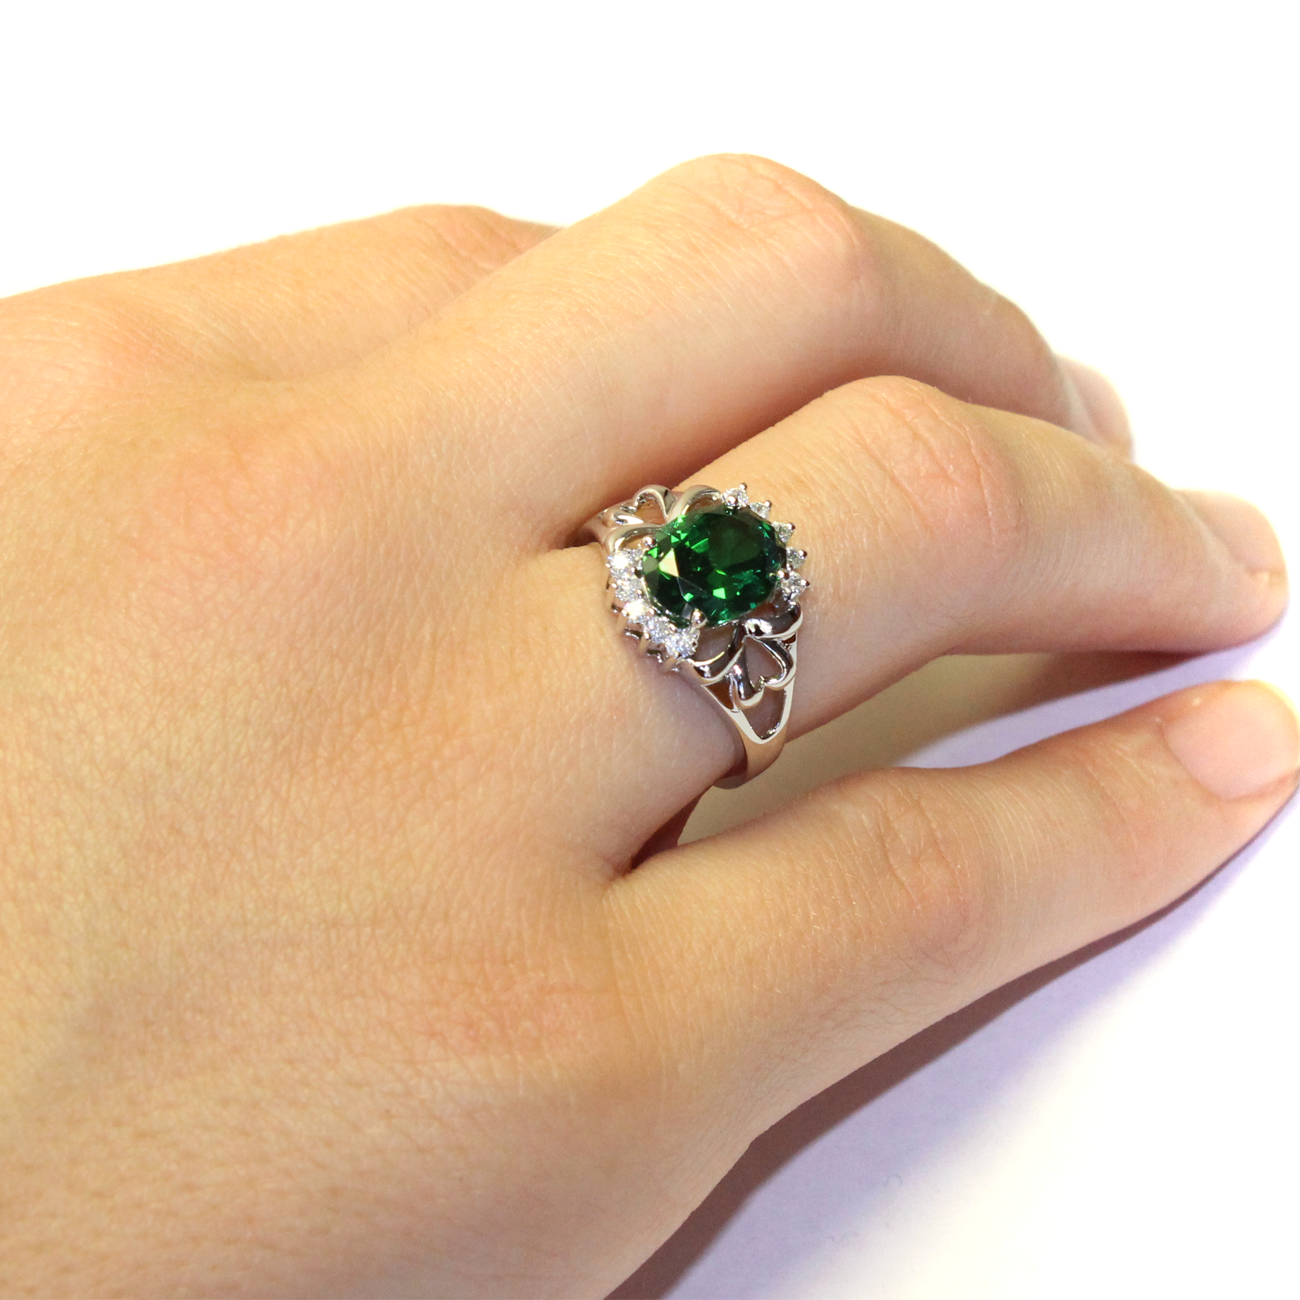 clover rings green four bling stacked silver jewelry leaf simulated ring sterling mdr emerald